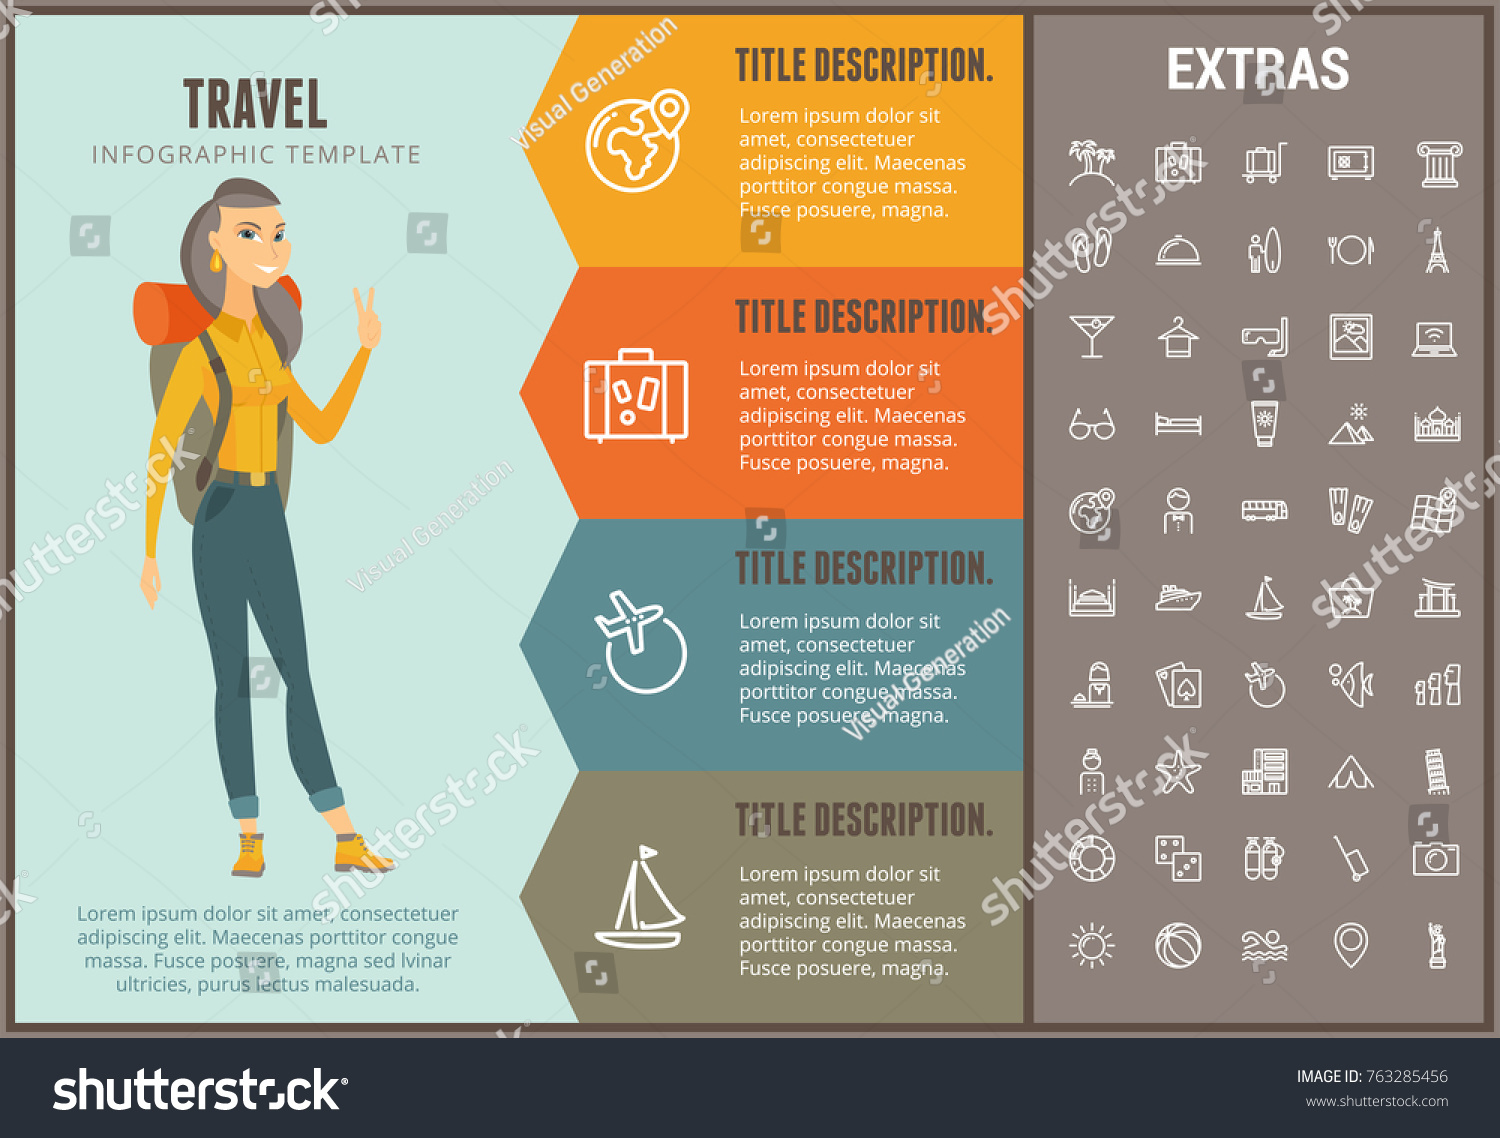 ... Cover Letter Accounting Clerk Sample. Design Templates Icons Travel  Icon Business Marketing Sample